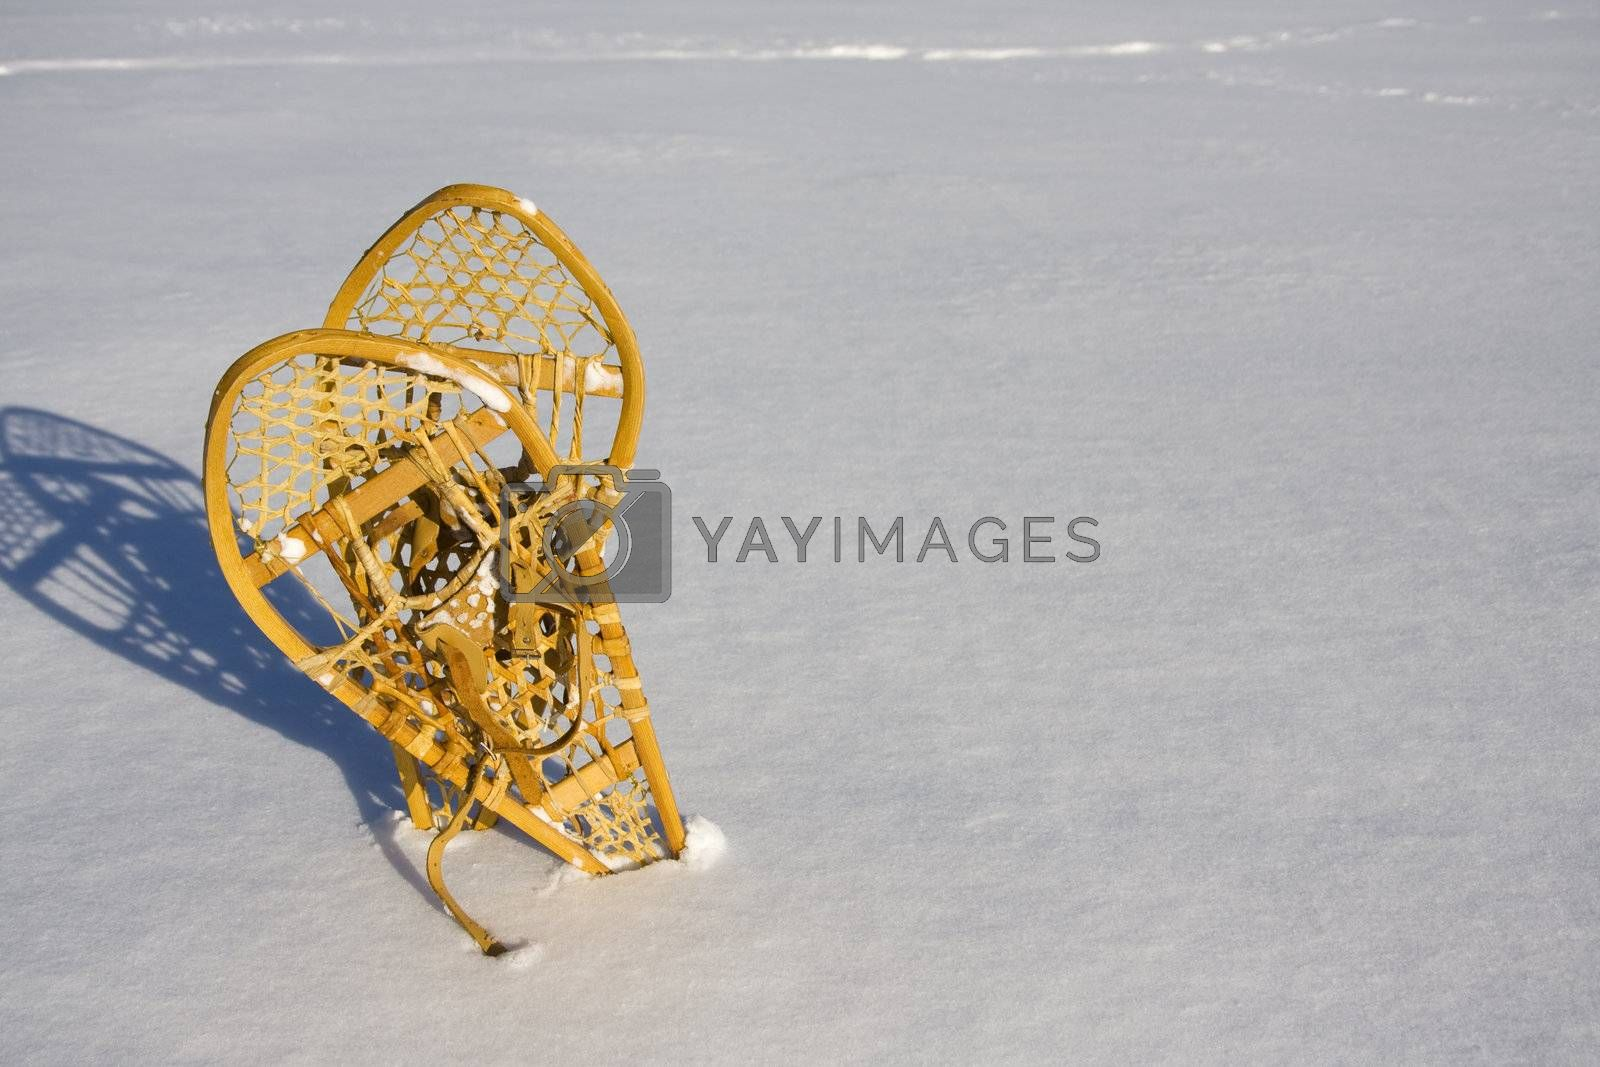 Two snowshoes standing in the snow